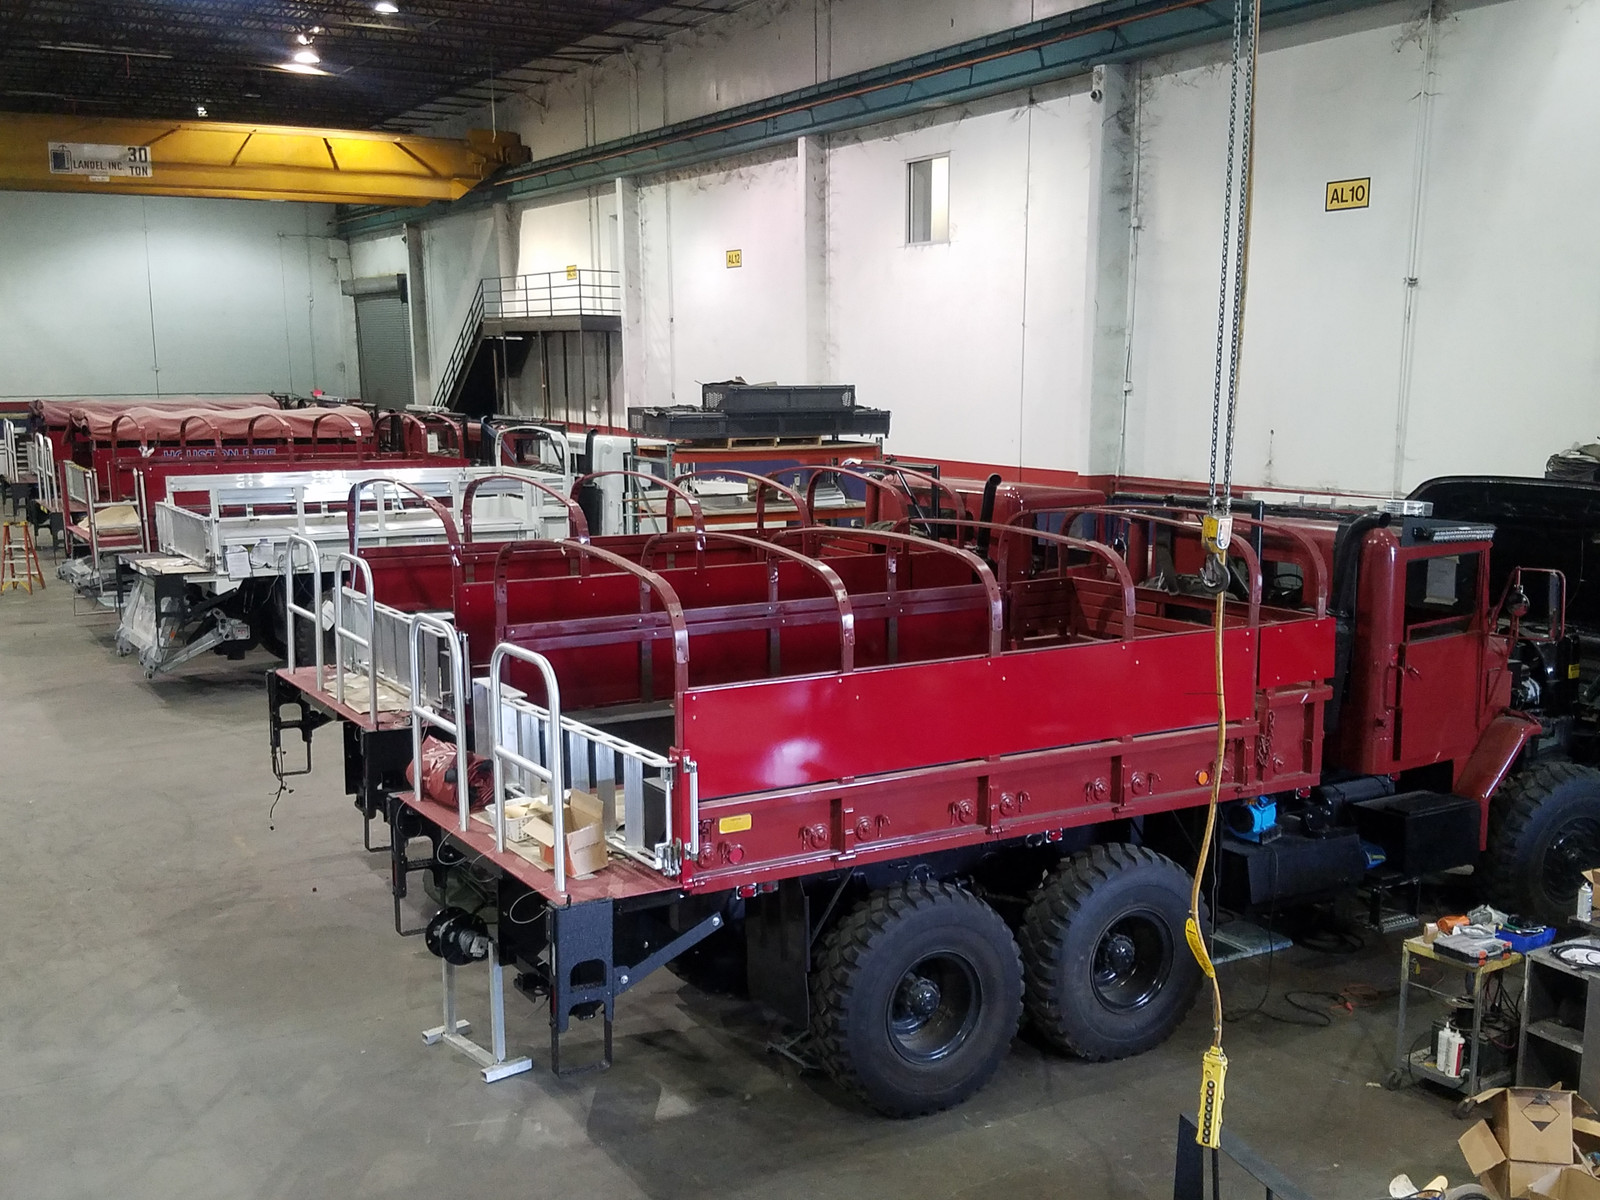 High Water Rescue Vehicles Pre Spray